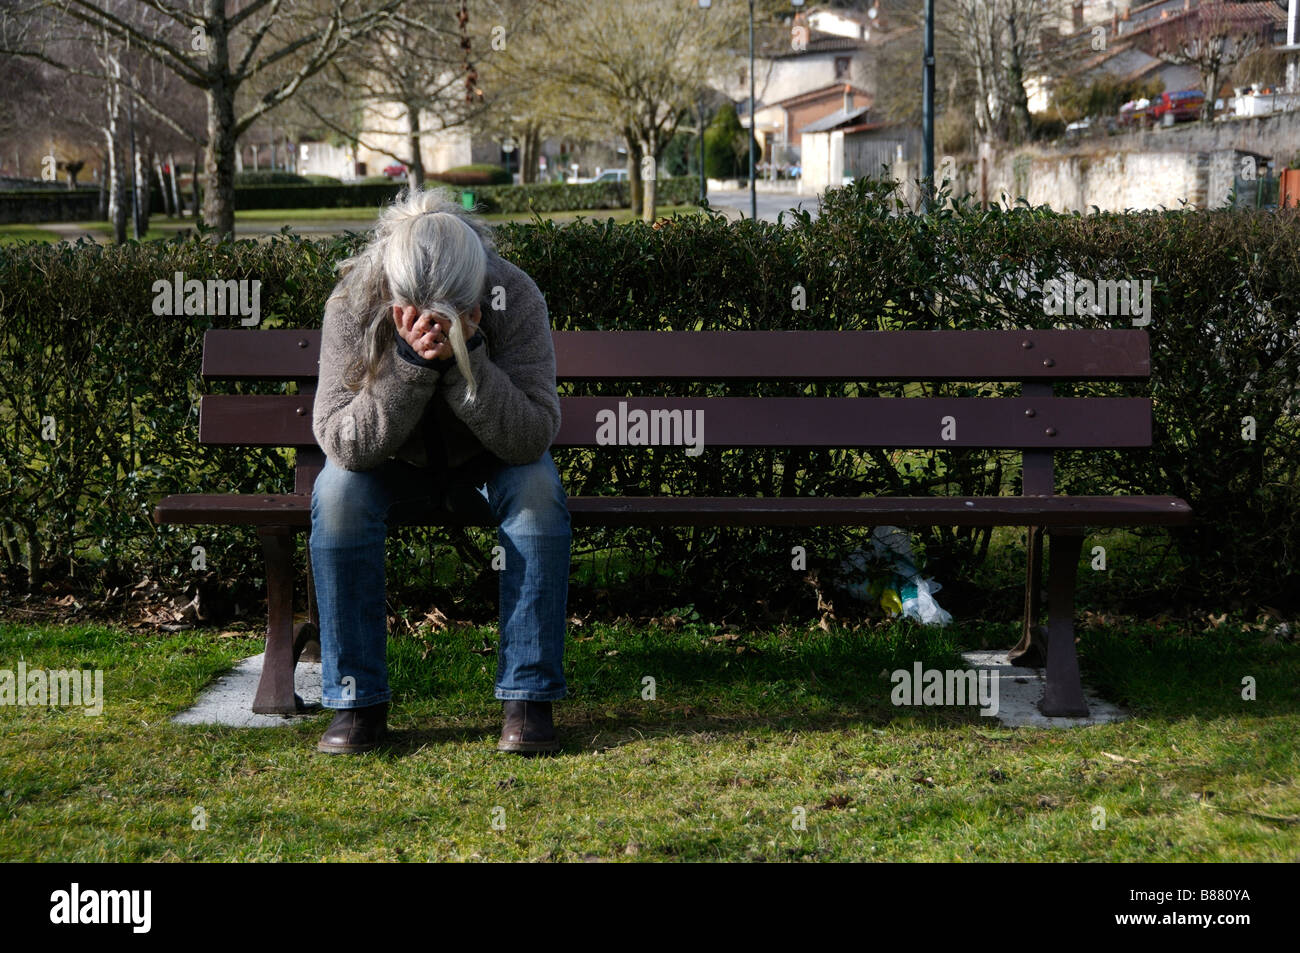 Stock Photo Of A Woman Sitting Alone On A Park Bench With Her Head